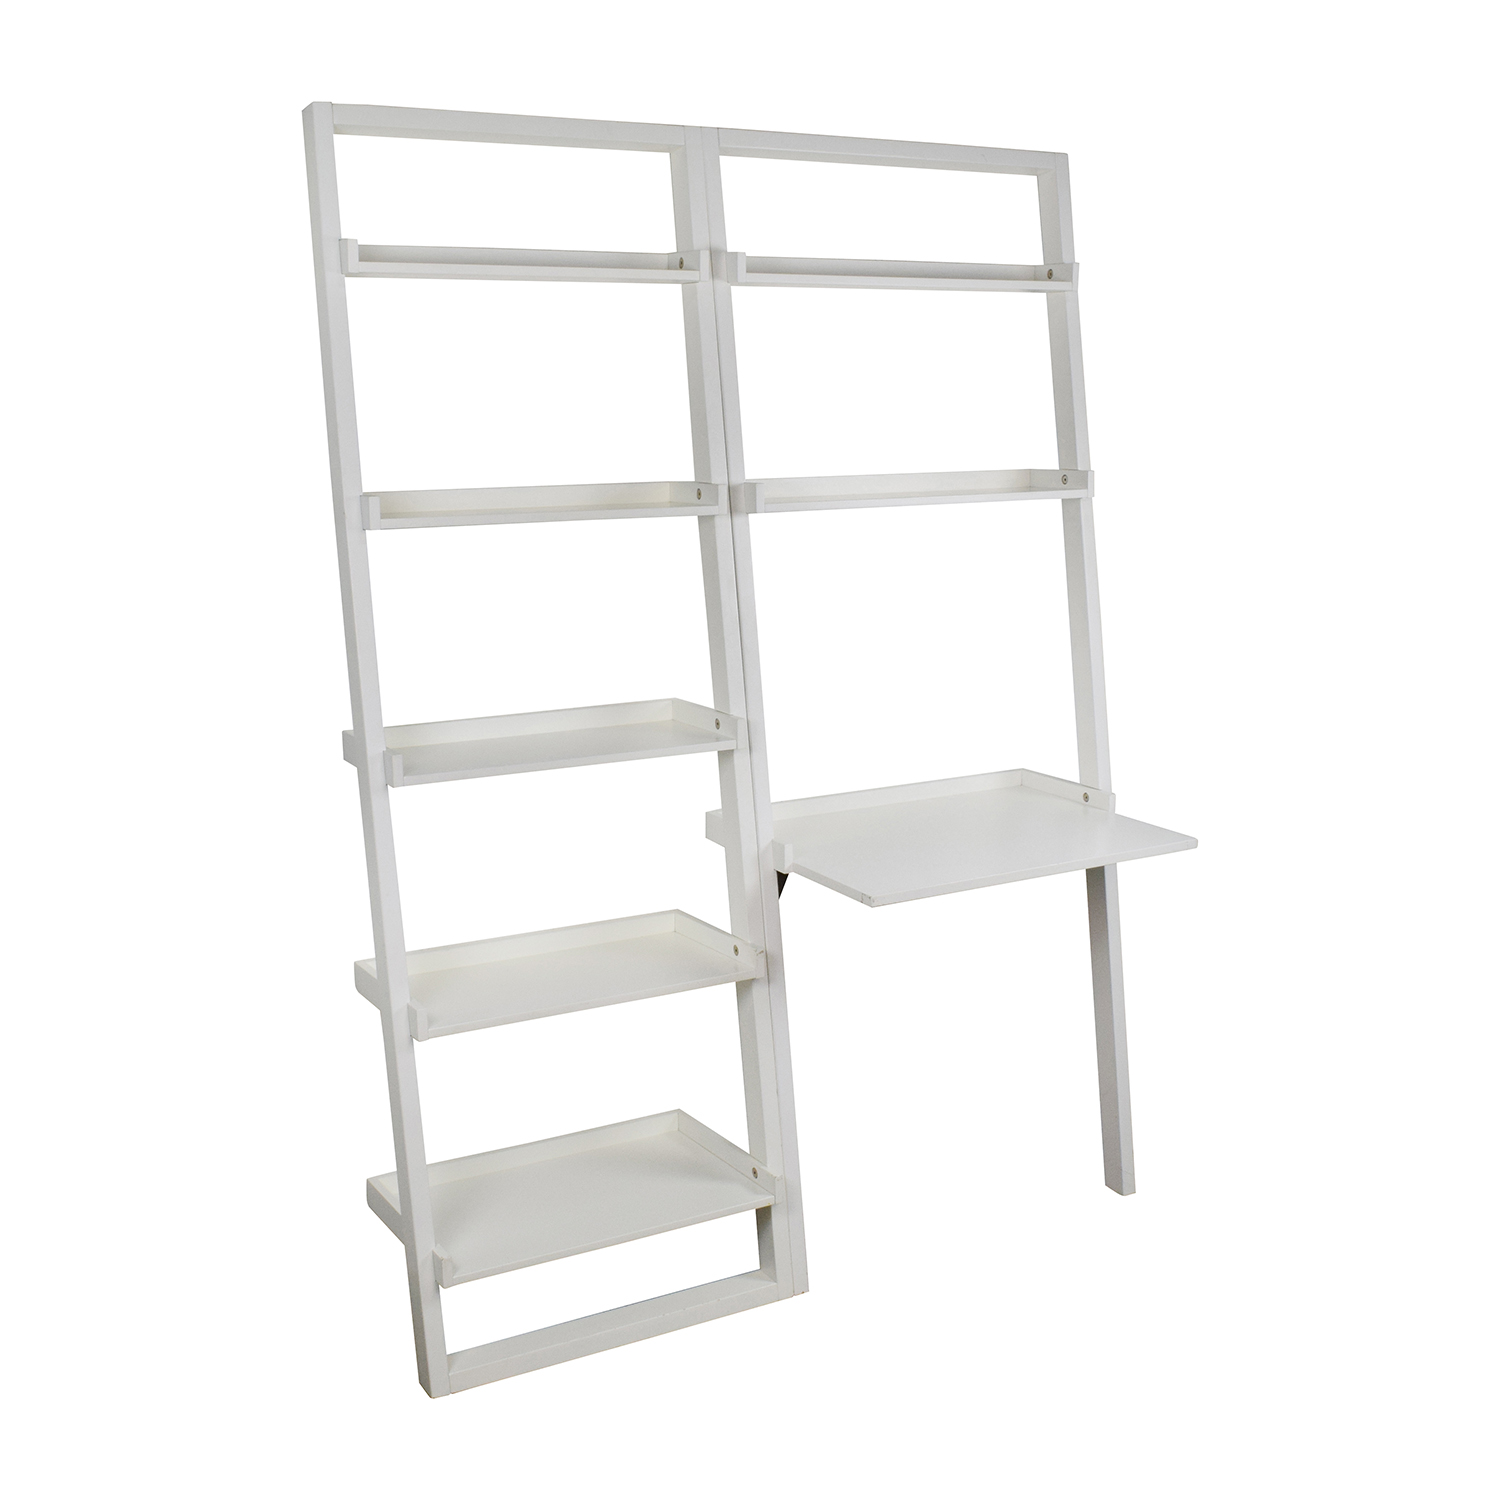 Crate and Barrel Leaning Bookcase and Desk on sale